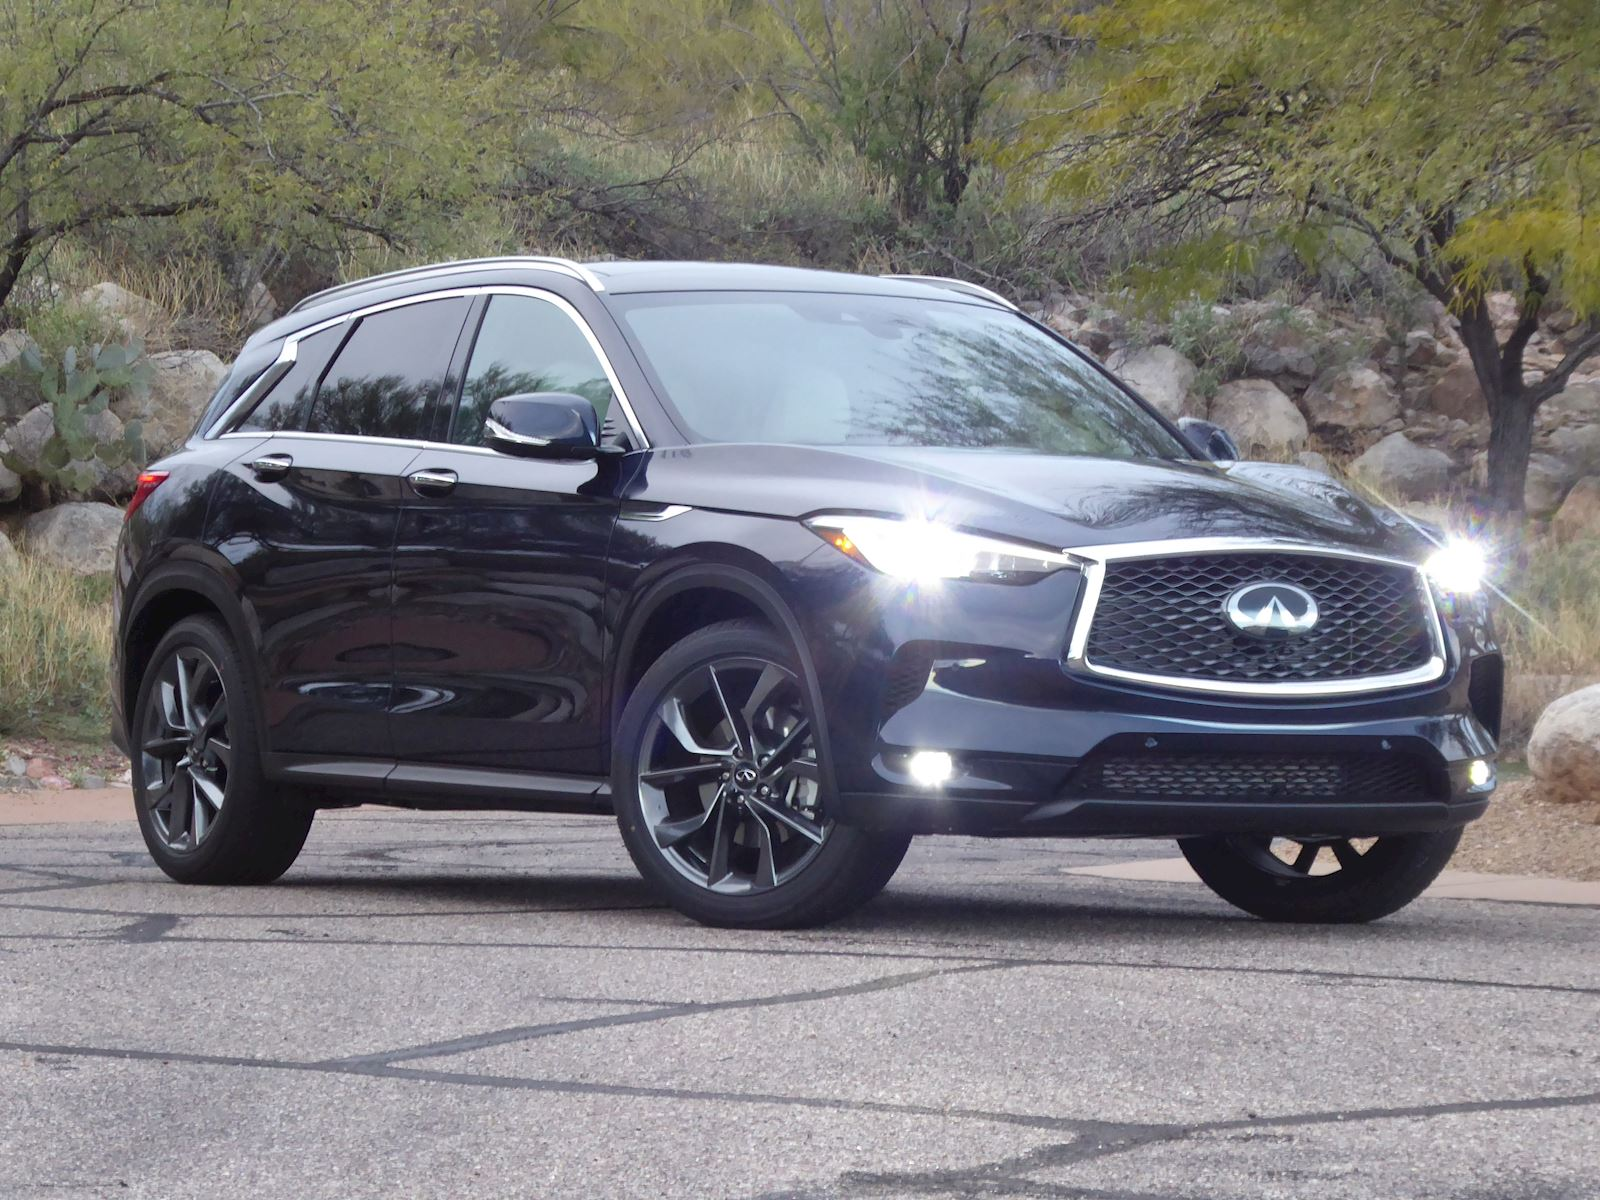 2020 Infiniti QX50 front view